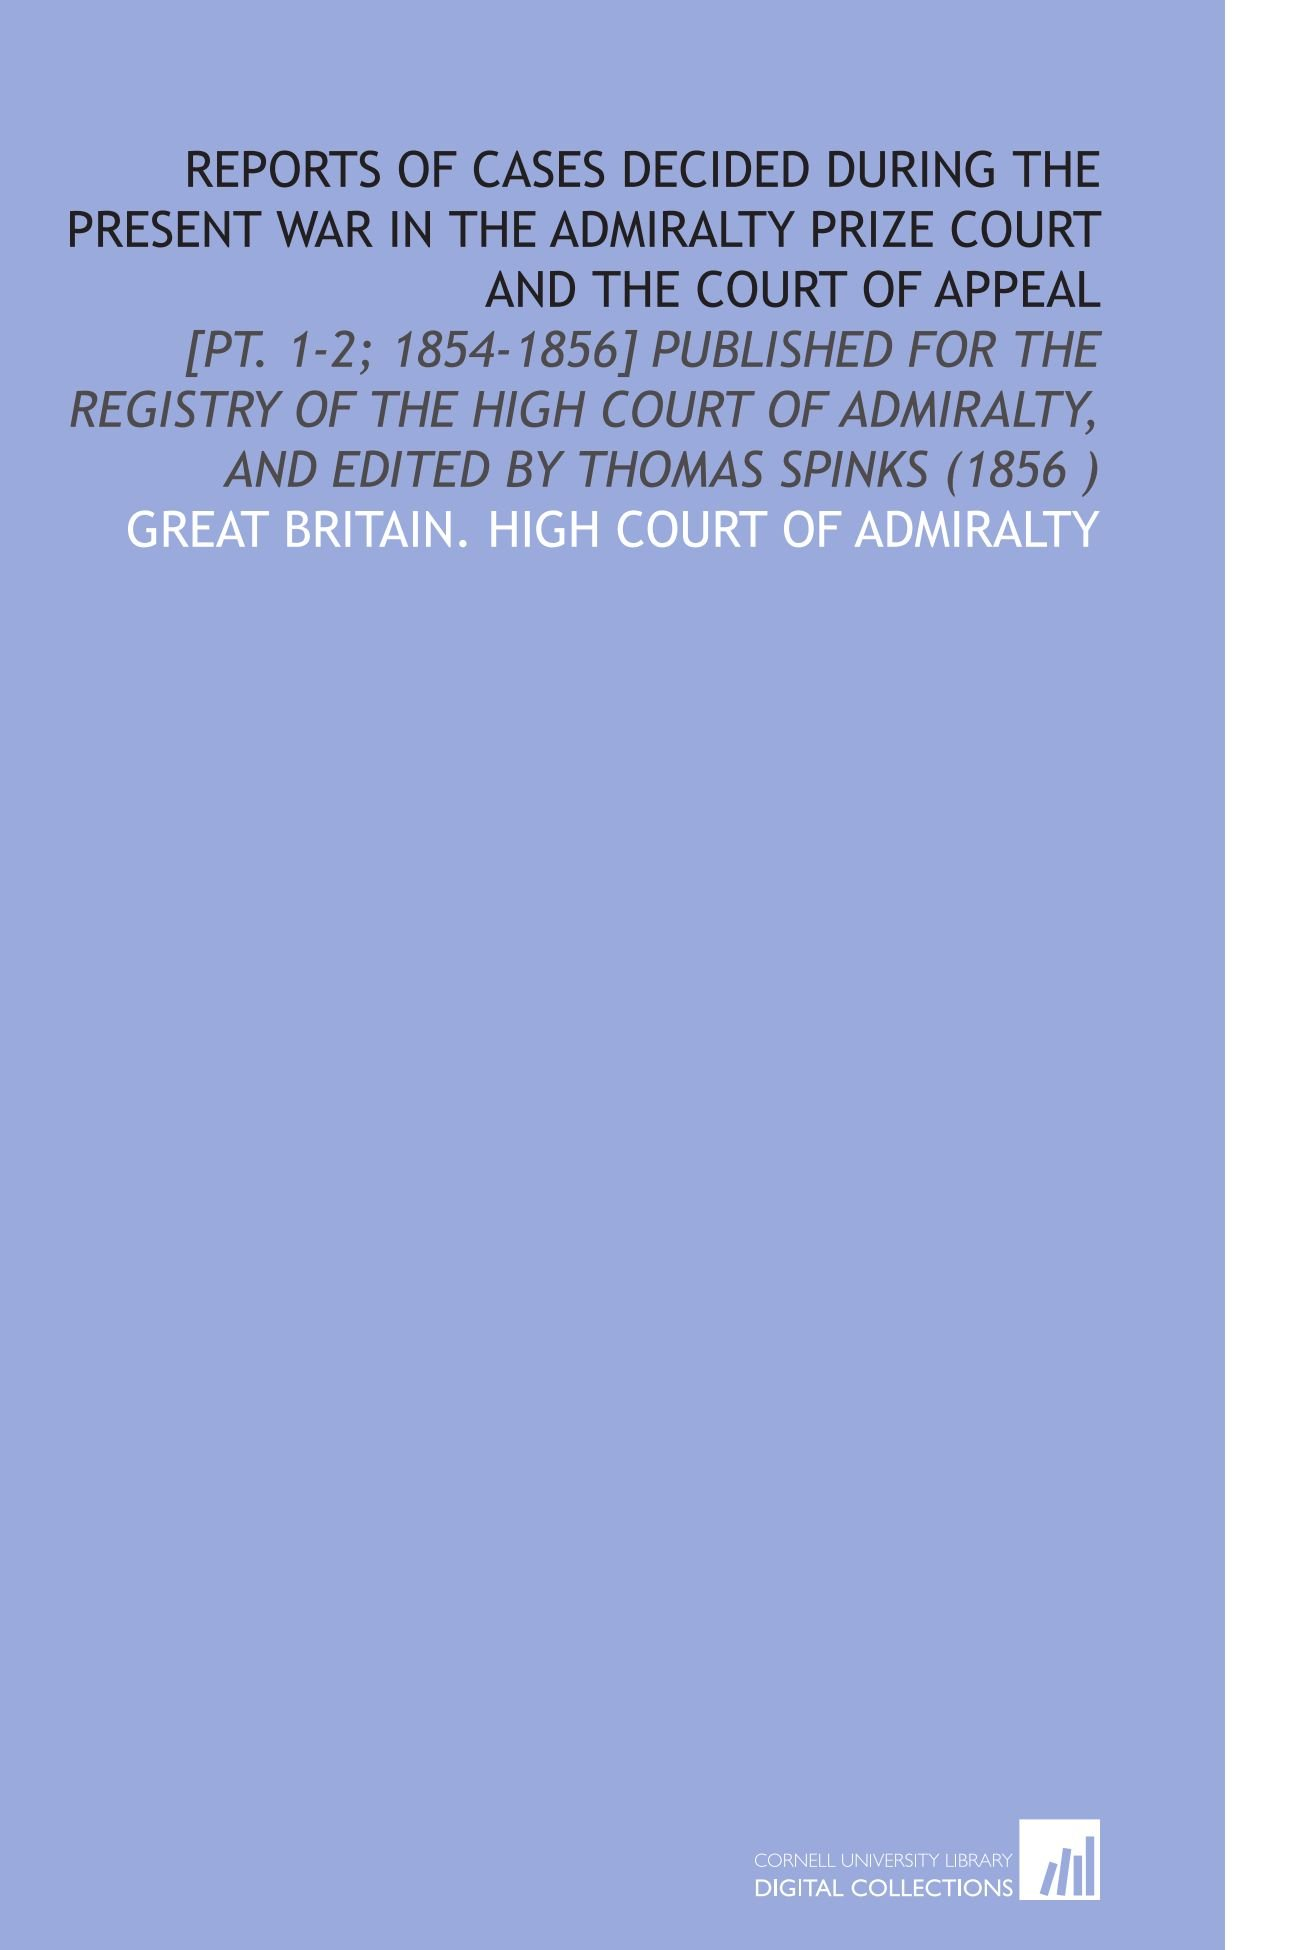 Read Online Reports of Cases Decided During the Present War in the Admiralty Prize Court and the Court of Appeal: [Pt. 1-2; 1854-1856] Published for the Registry ... and Edited by Thomas Spinks (1856 ) pdf epub